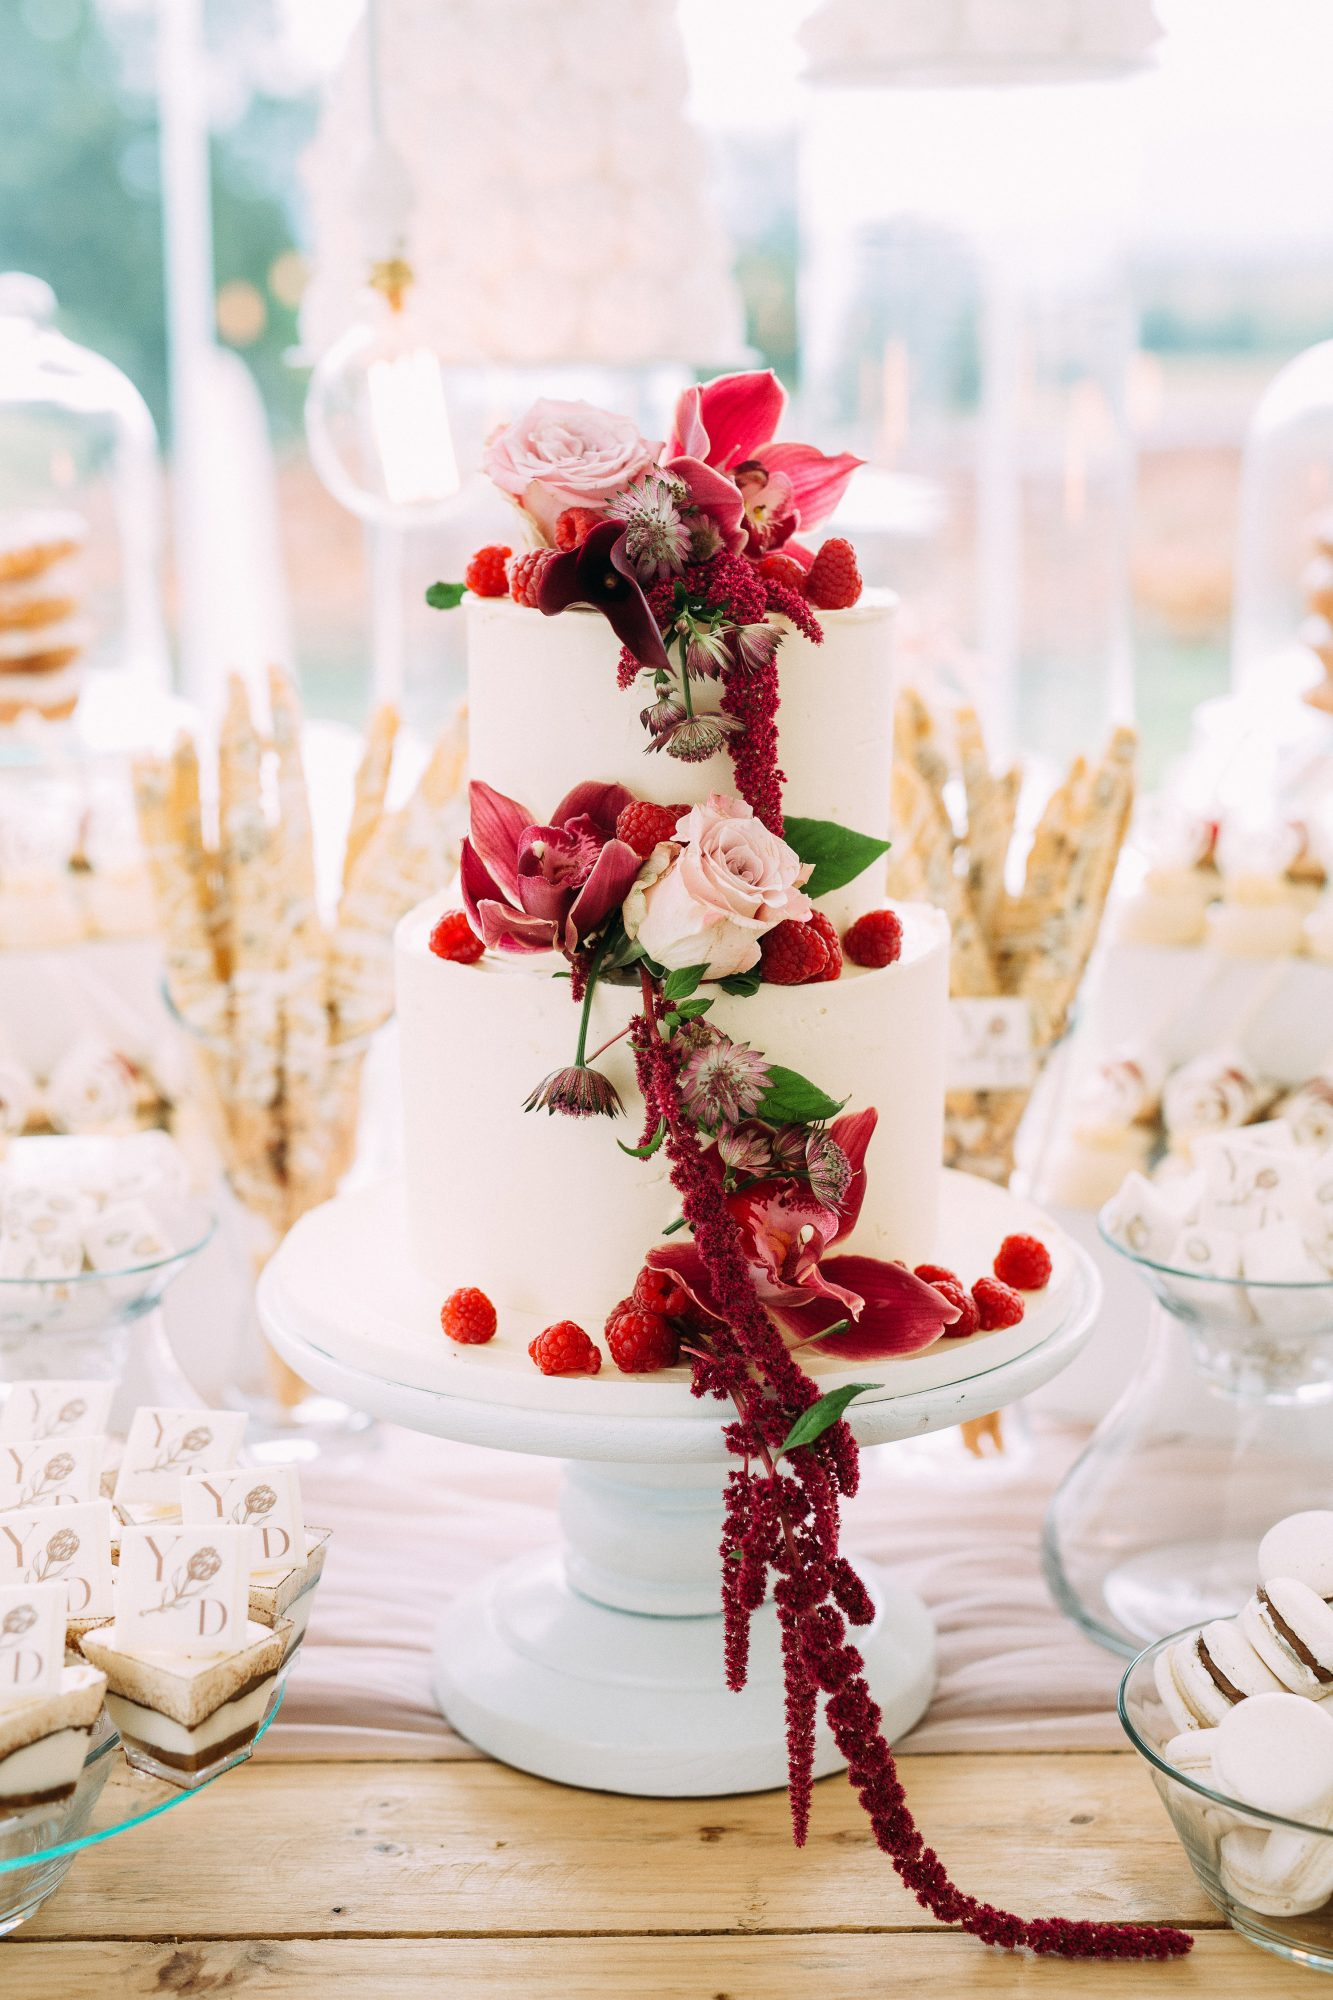 yolana douglas wedding cake with berries and flowers